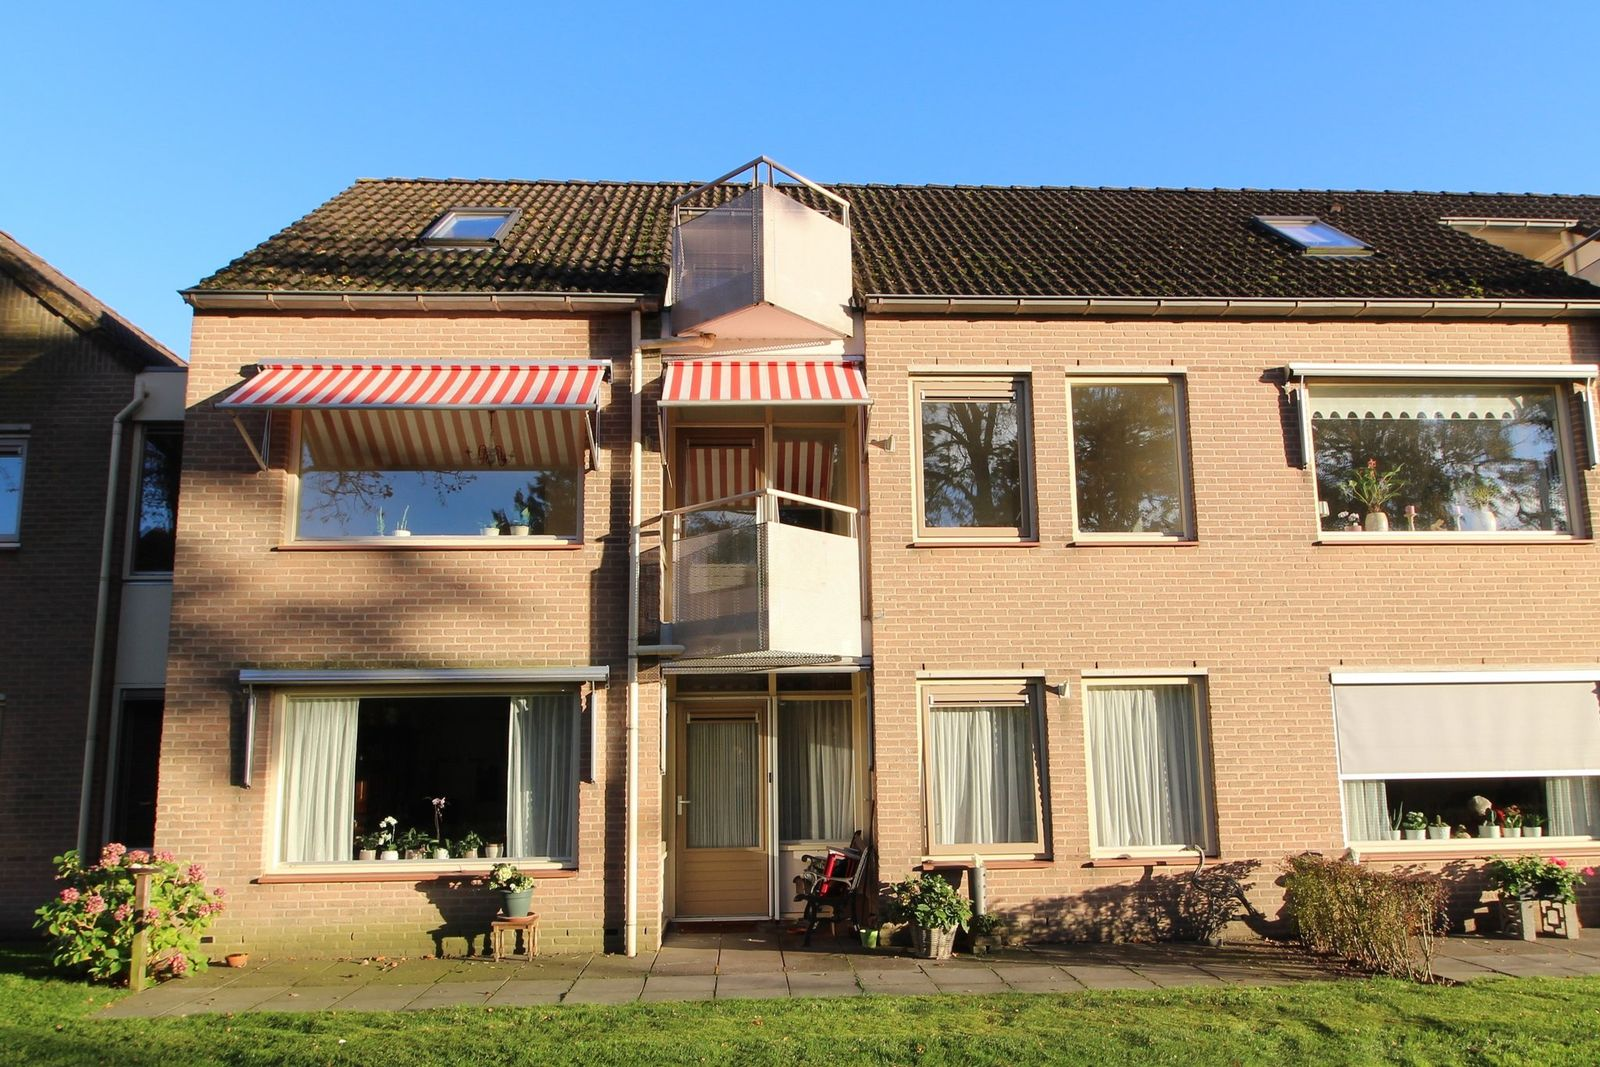 Molenweg 66, Havelte